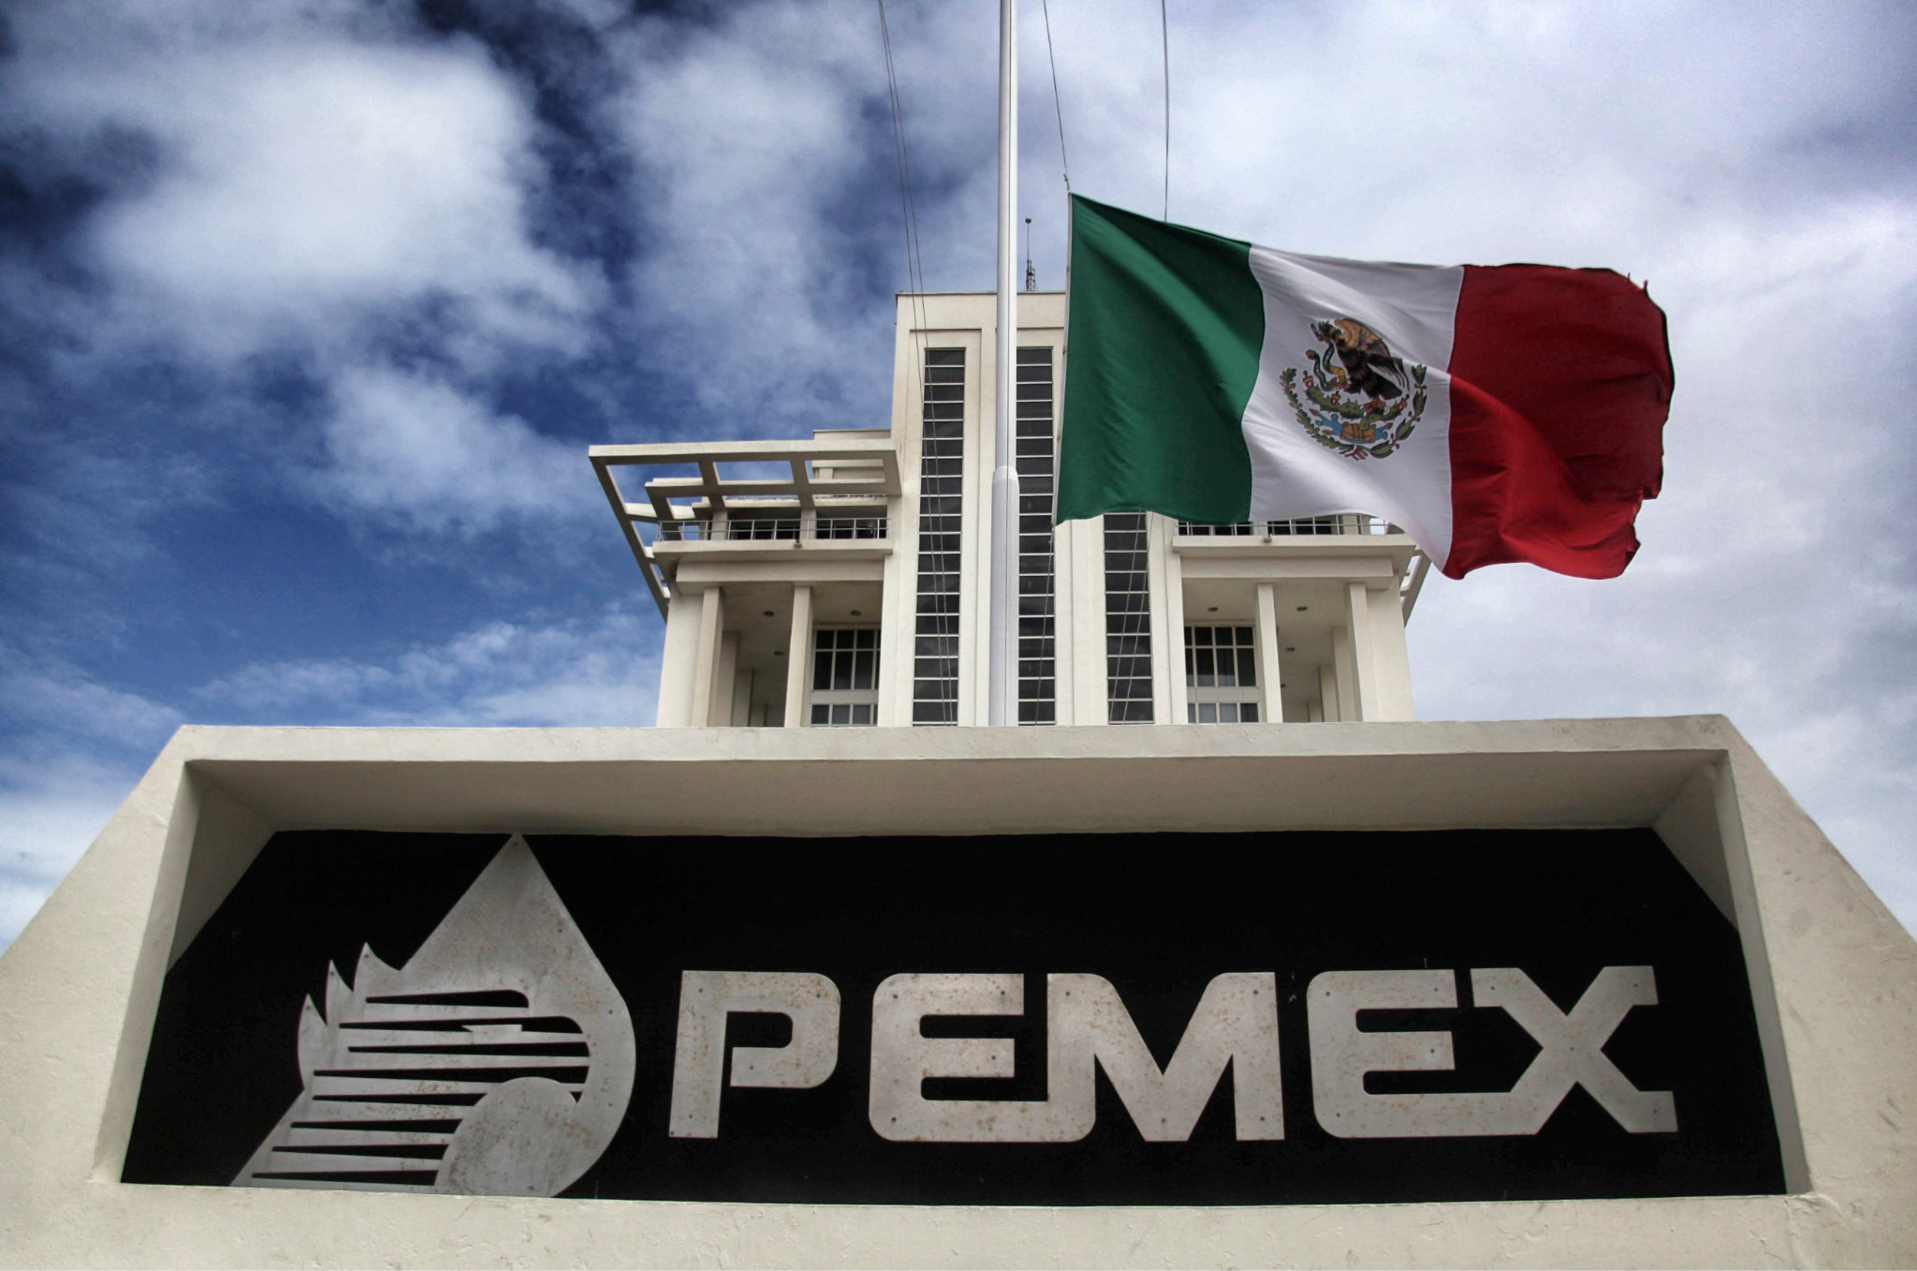 Pemex has stopped the work of a refinery in Mexico due to an emergency